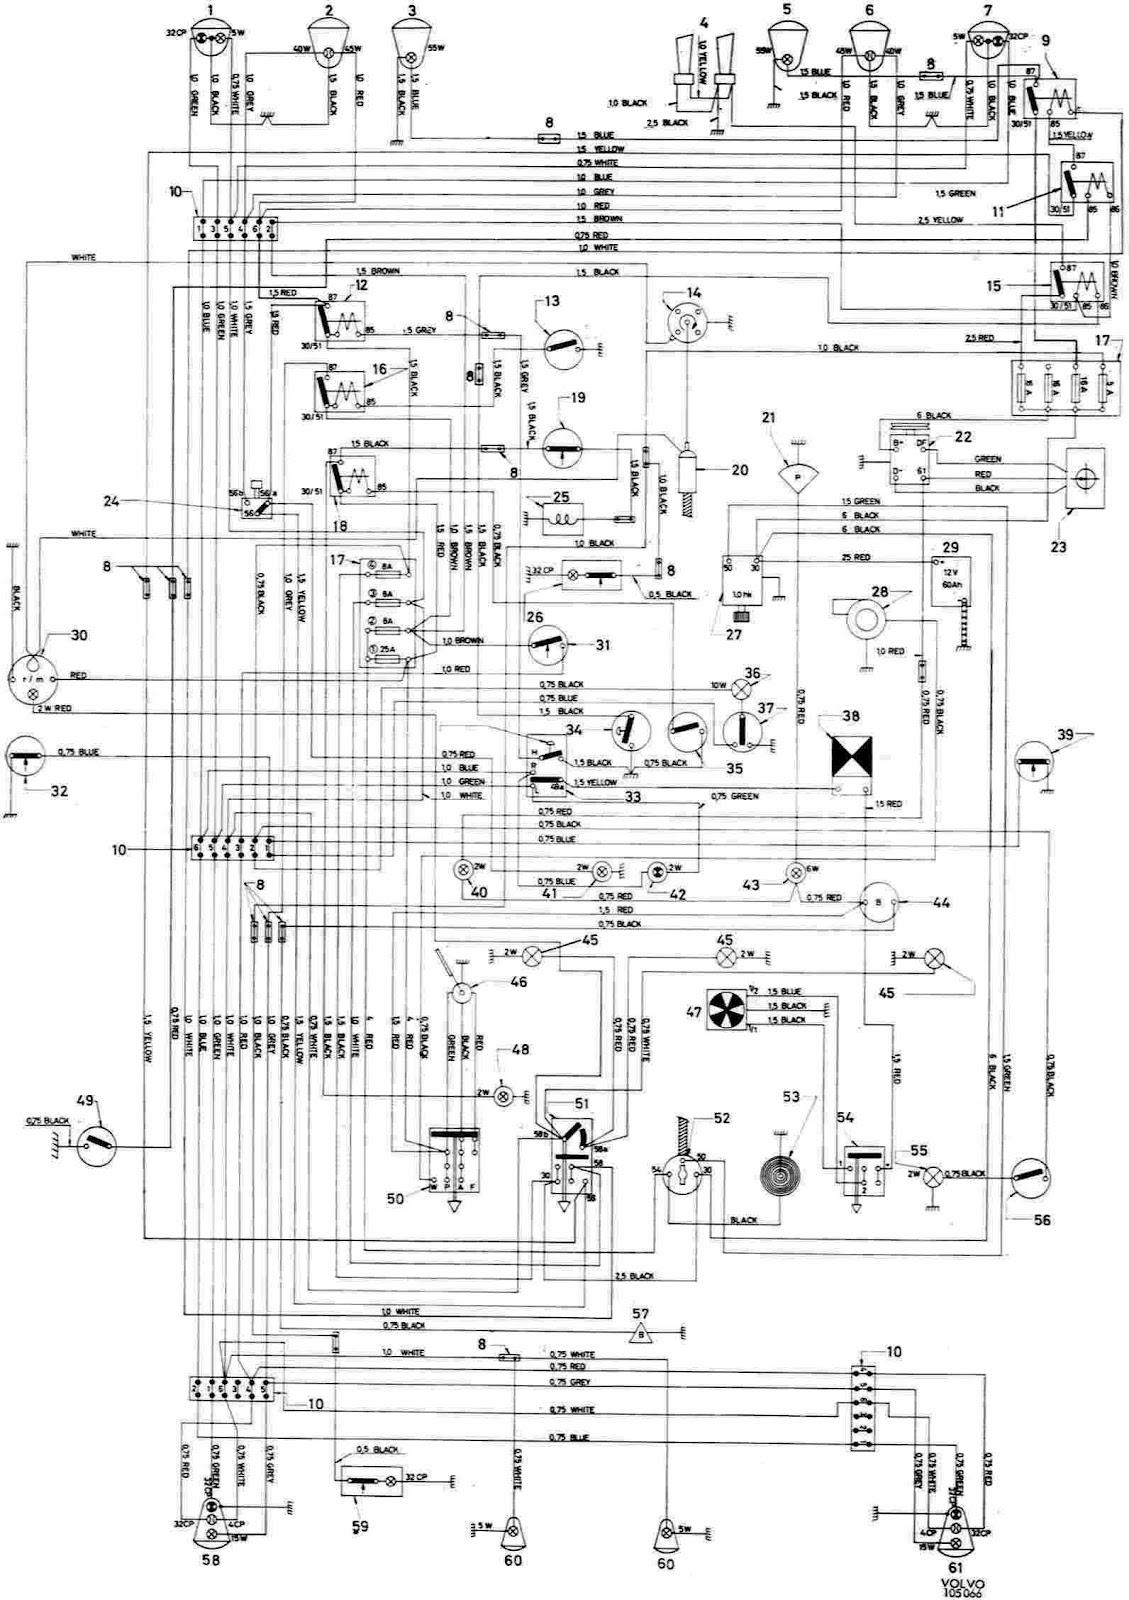 Volvo+123+GT+Complete+Wiring+Diagram 2005 volvo s40 wiring diagram volvo s40 steering diagram \u2022 wiring Volvo 240 Wiring Harness Routing at pacquiaovsvargaslive.co